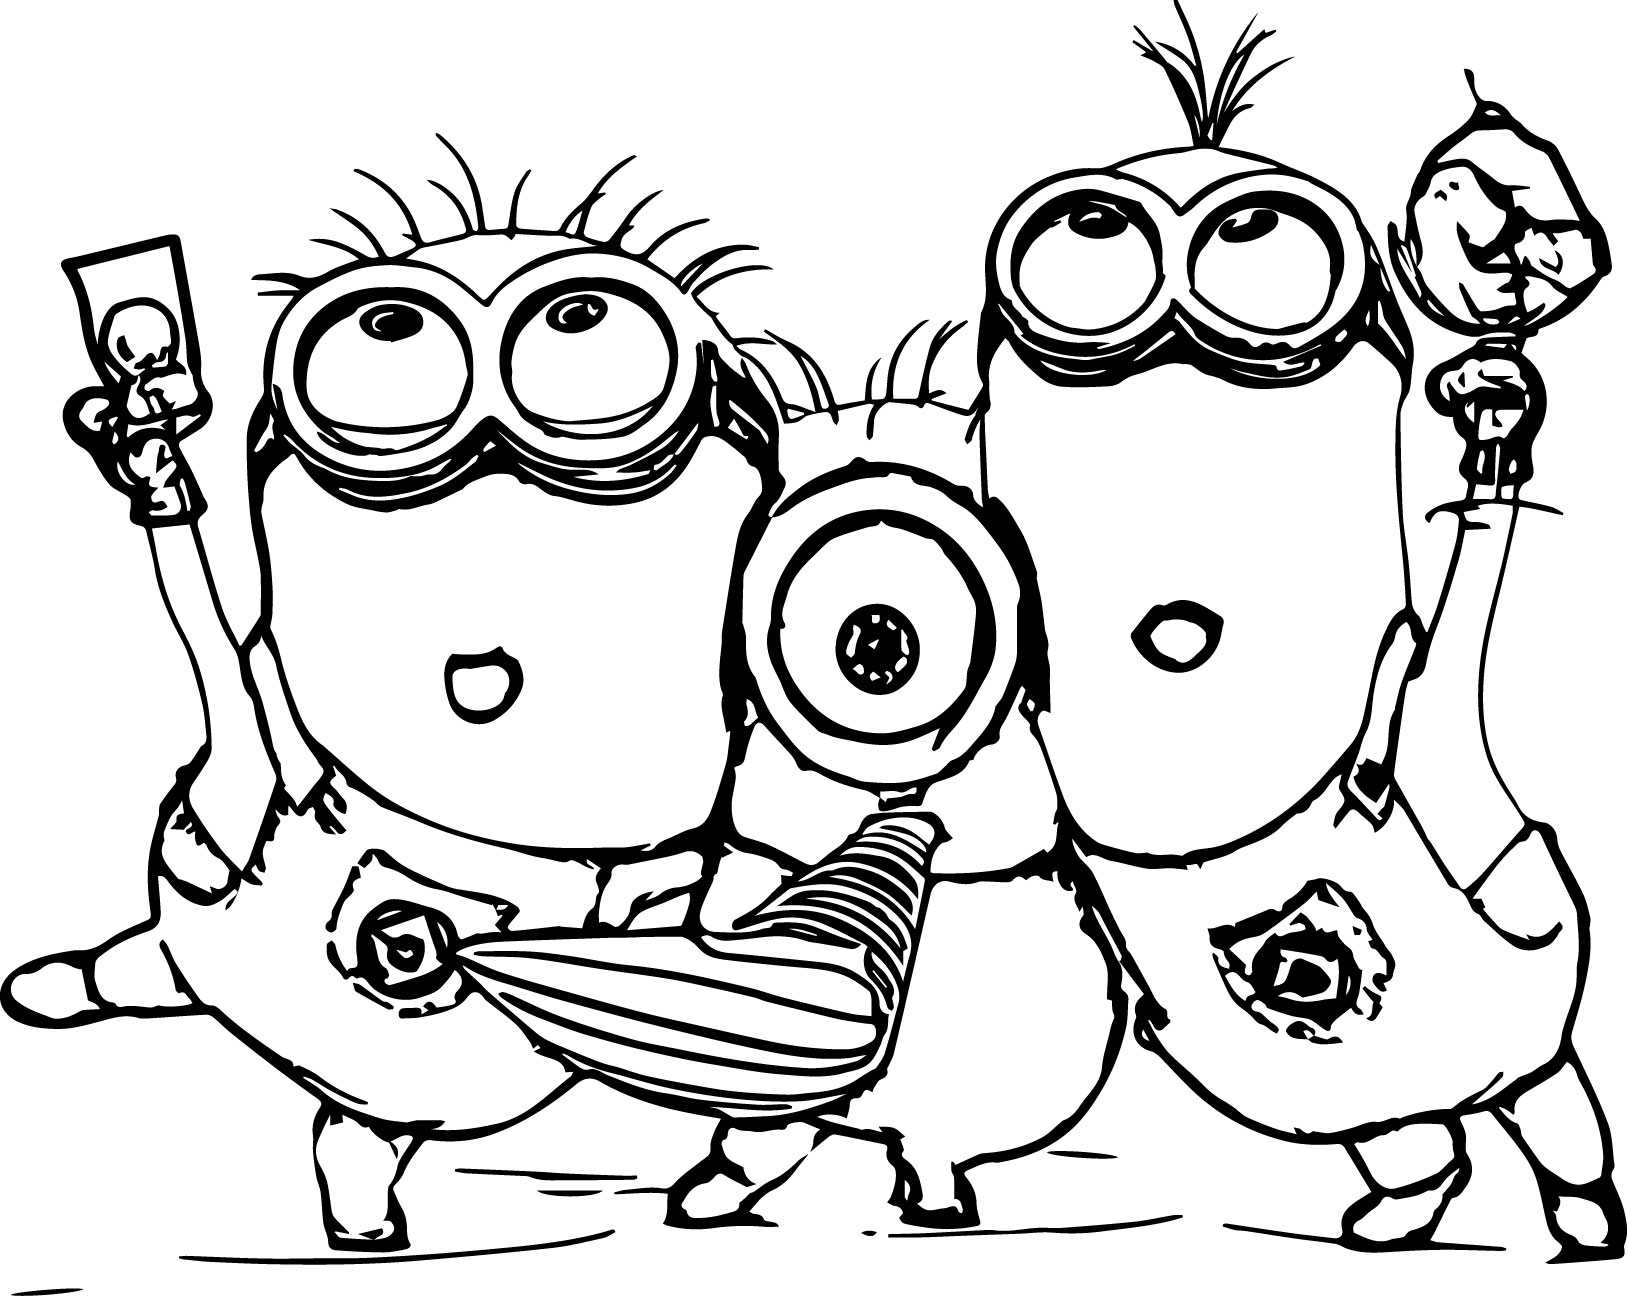 Minion Coloring Pages Best Coloring Pages For Kids Minions Coloring Page